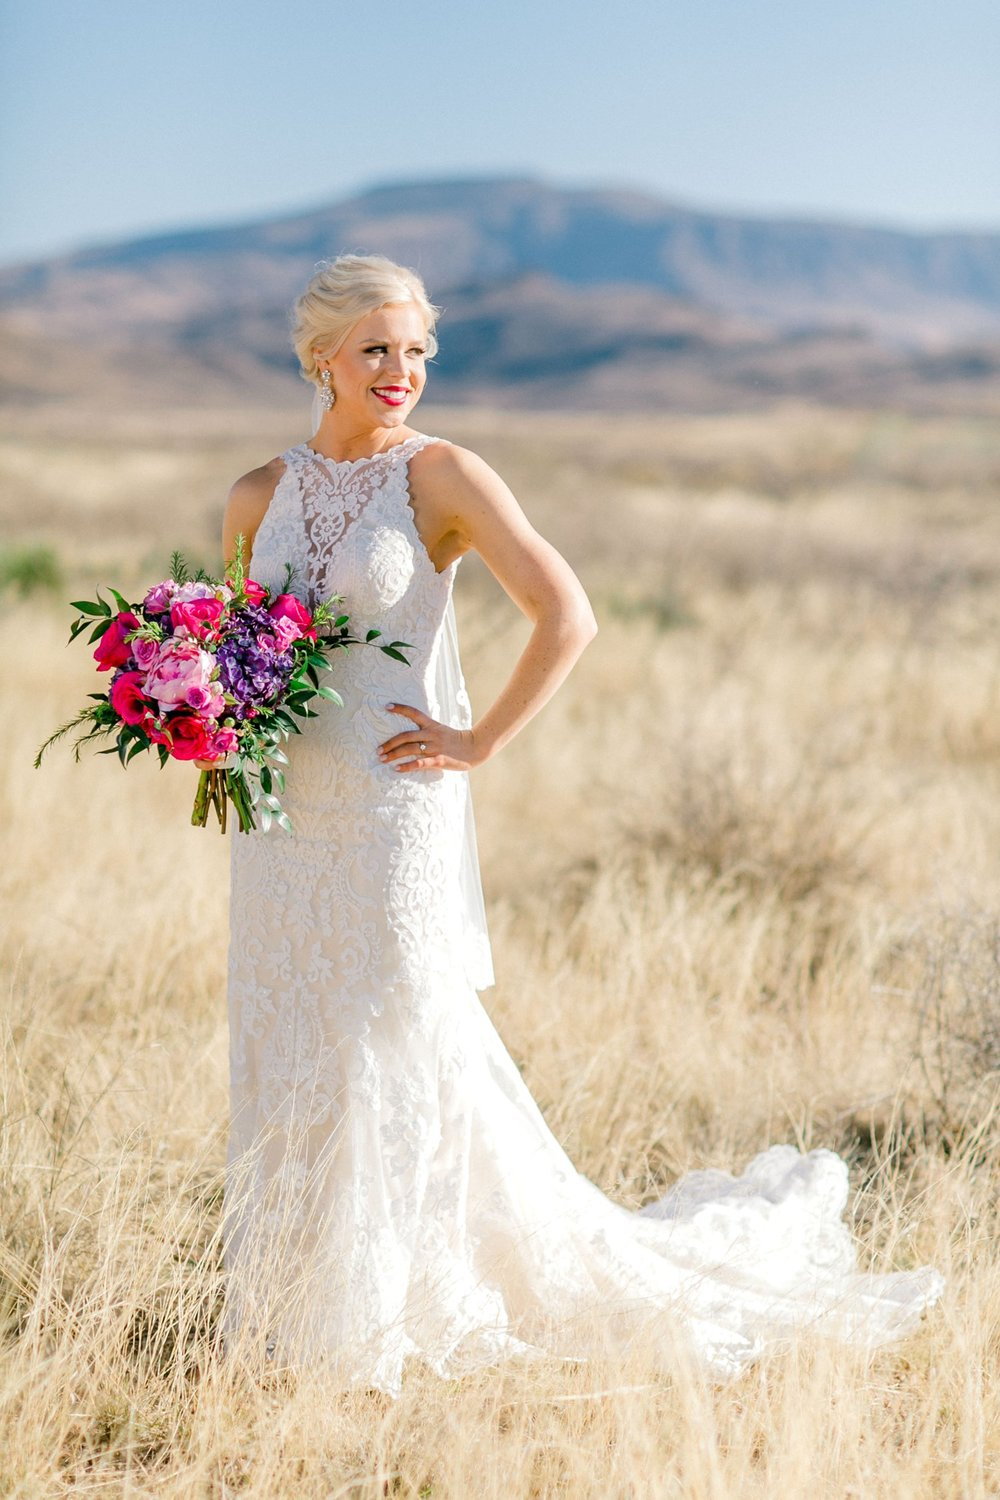 Jenna-evans-bridals-balmorhea-texas-fort-davis-wedding-photographer-lubbock-photographer__0011.jpg